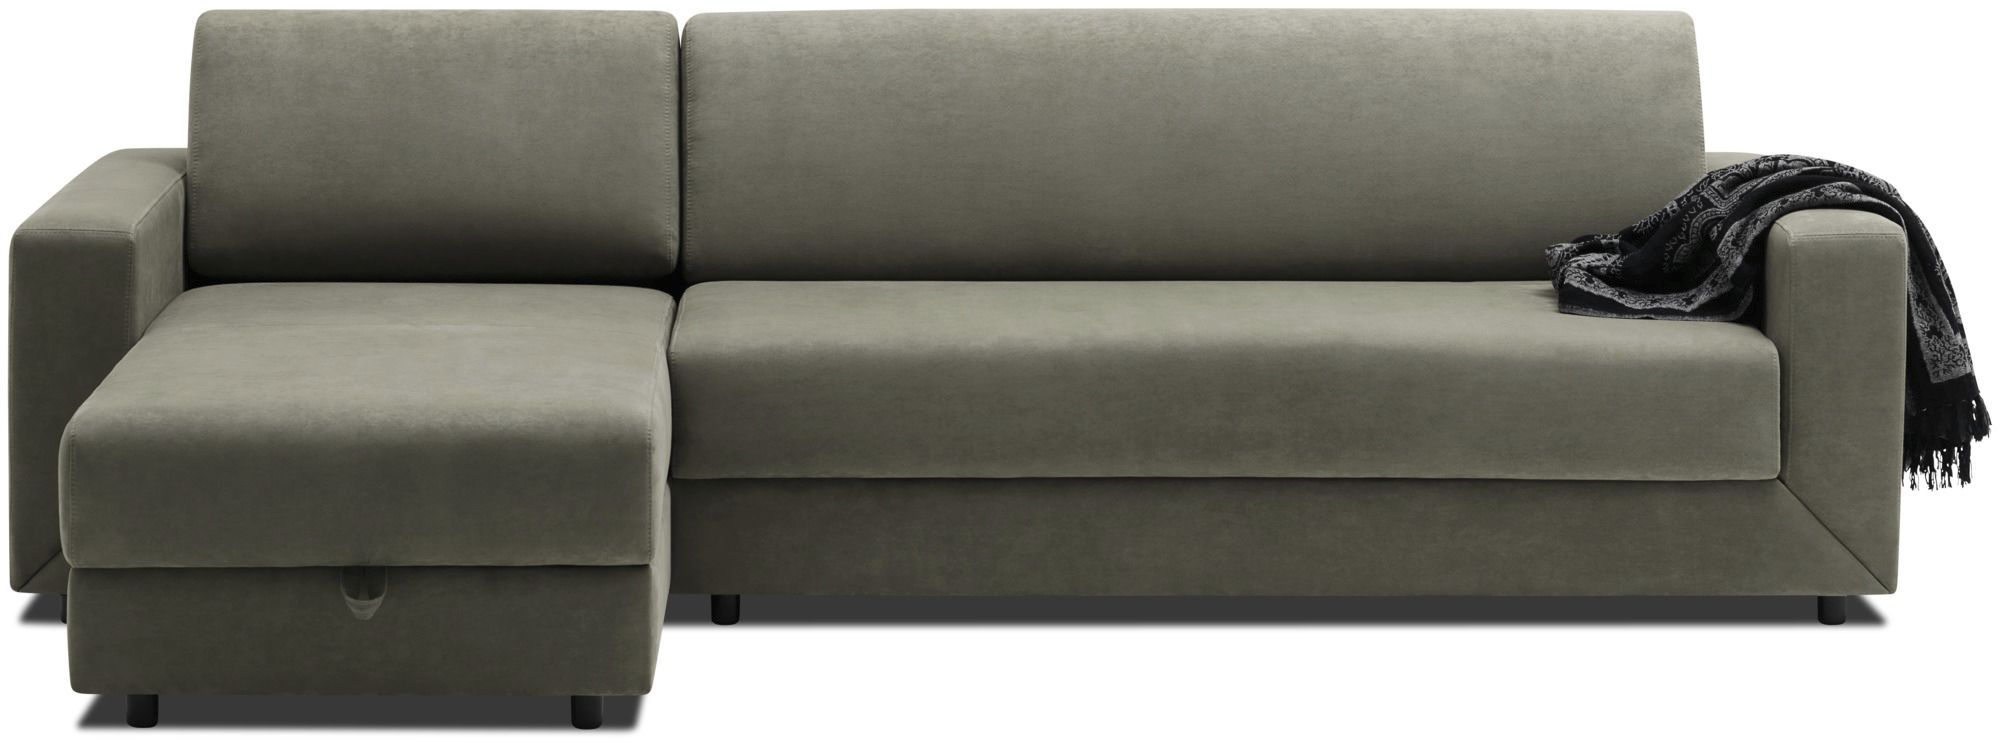 Stockholm Sofa Sofa Bed Contemporary Leather Fabric